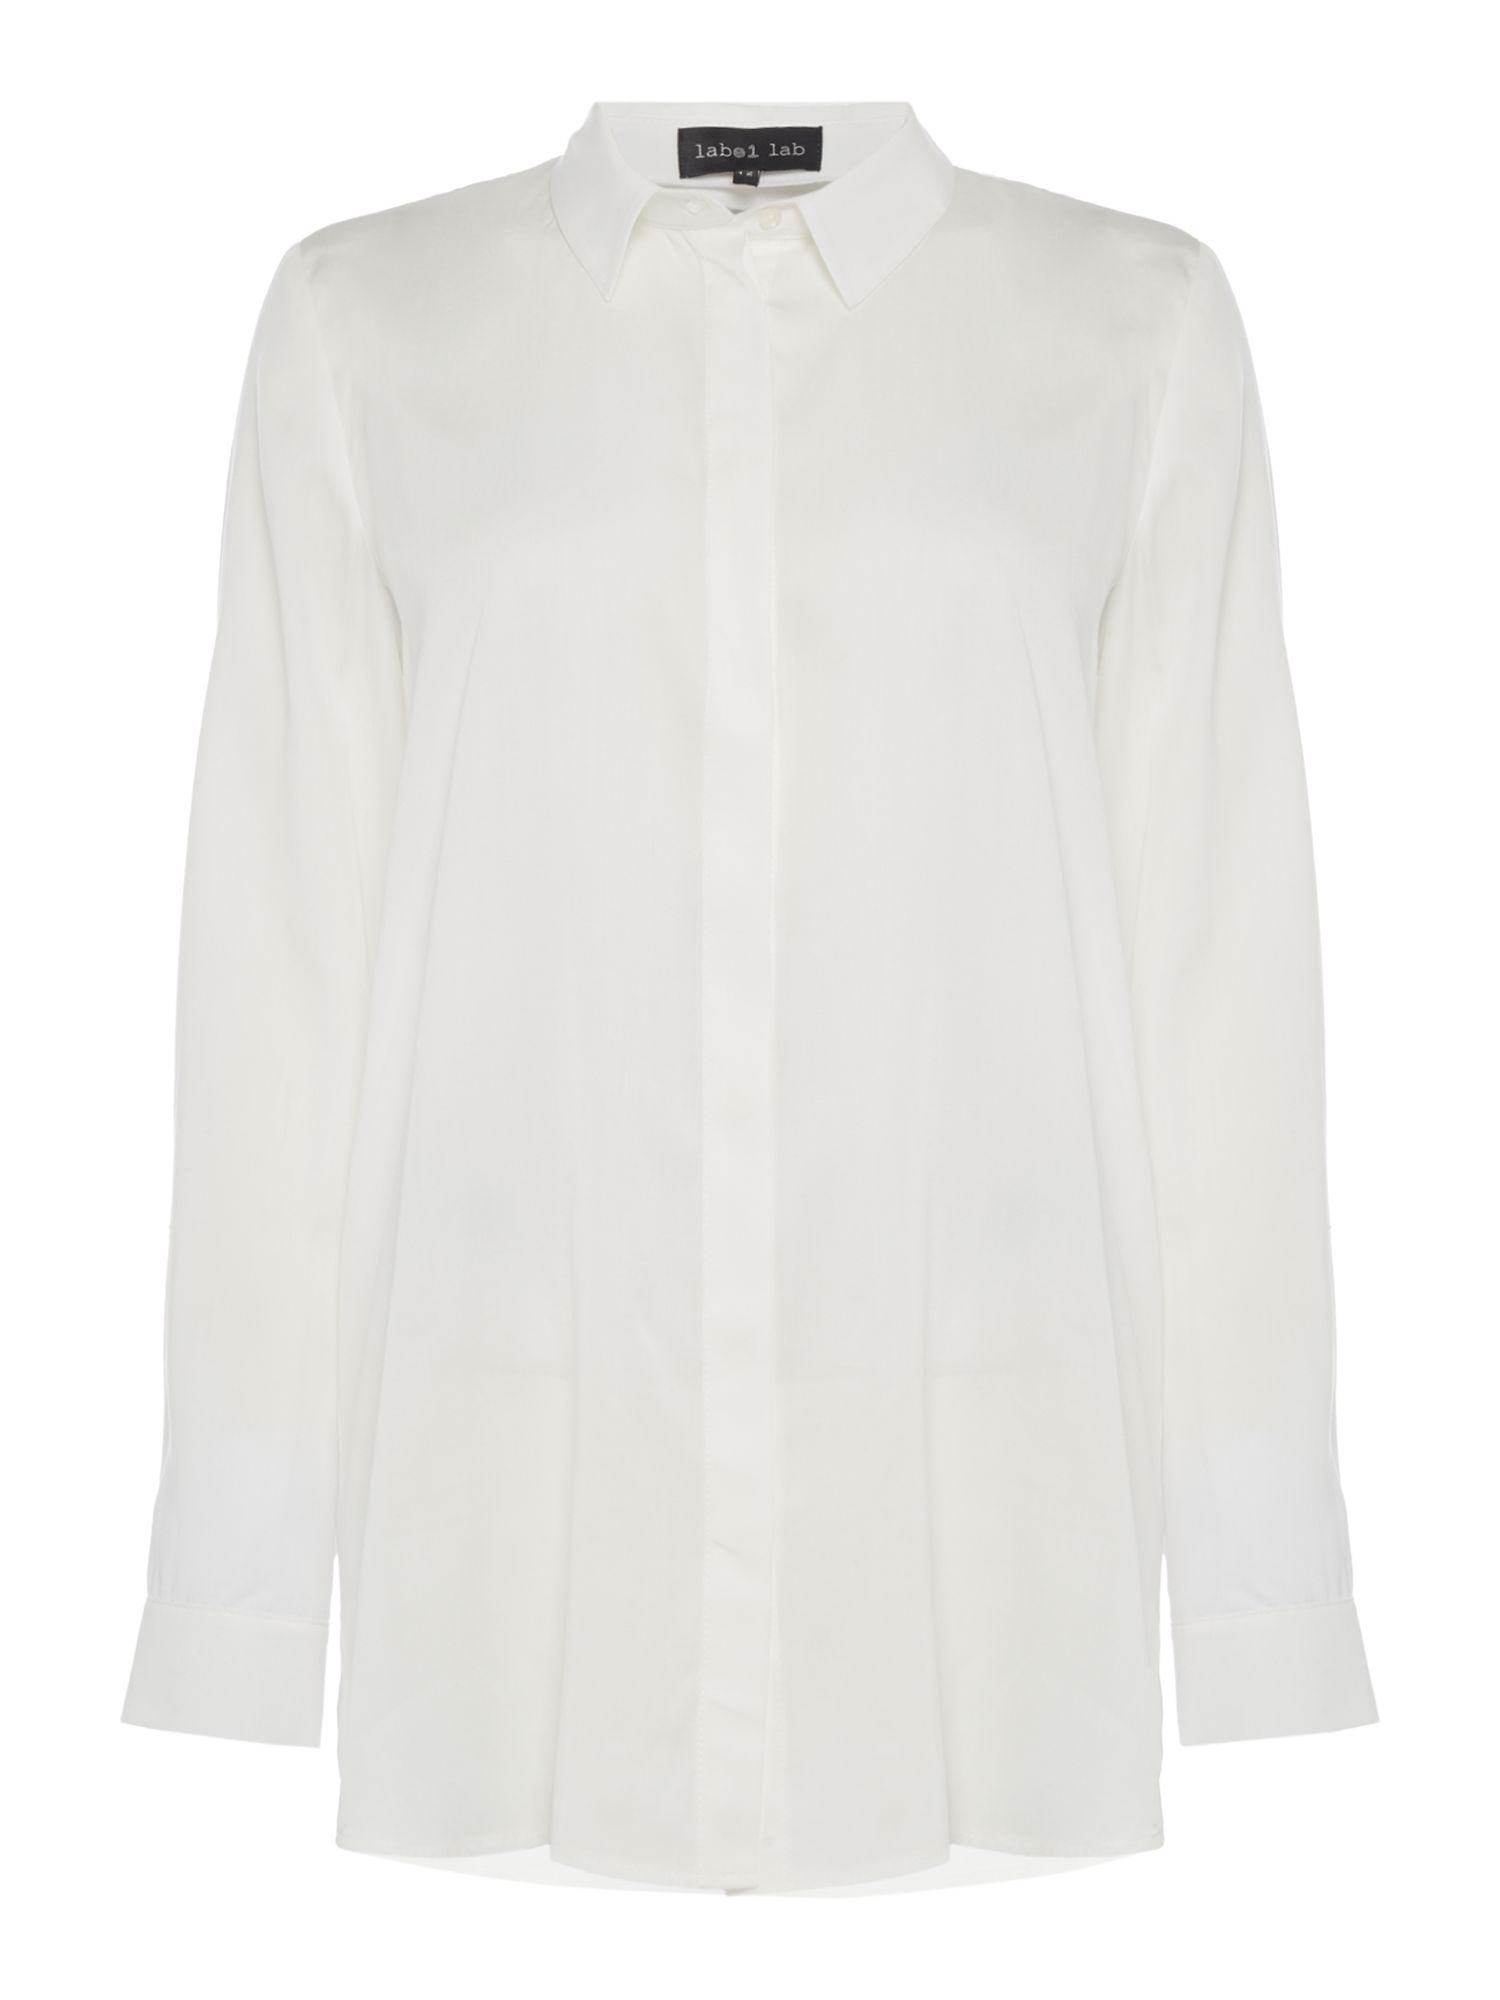 Label Lab D-Ring Longline Shirt, White